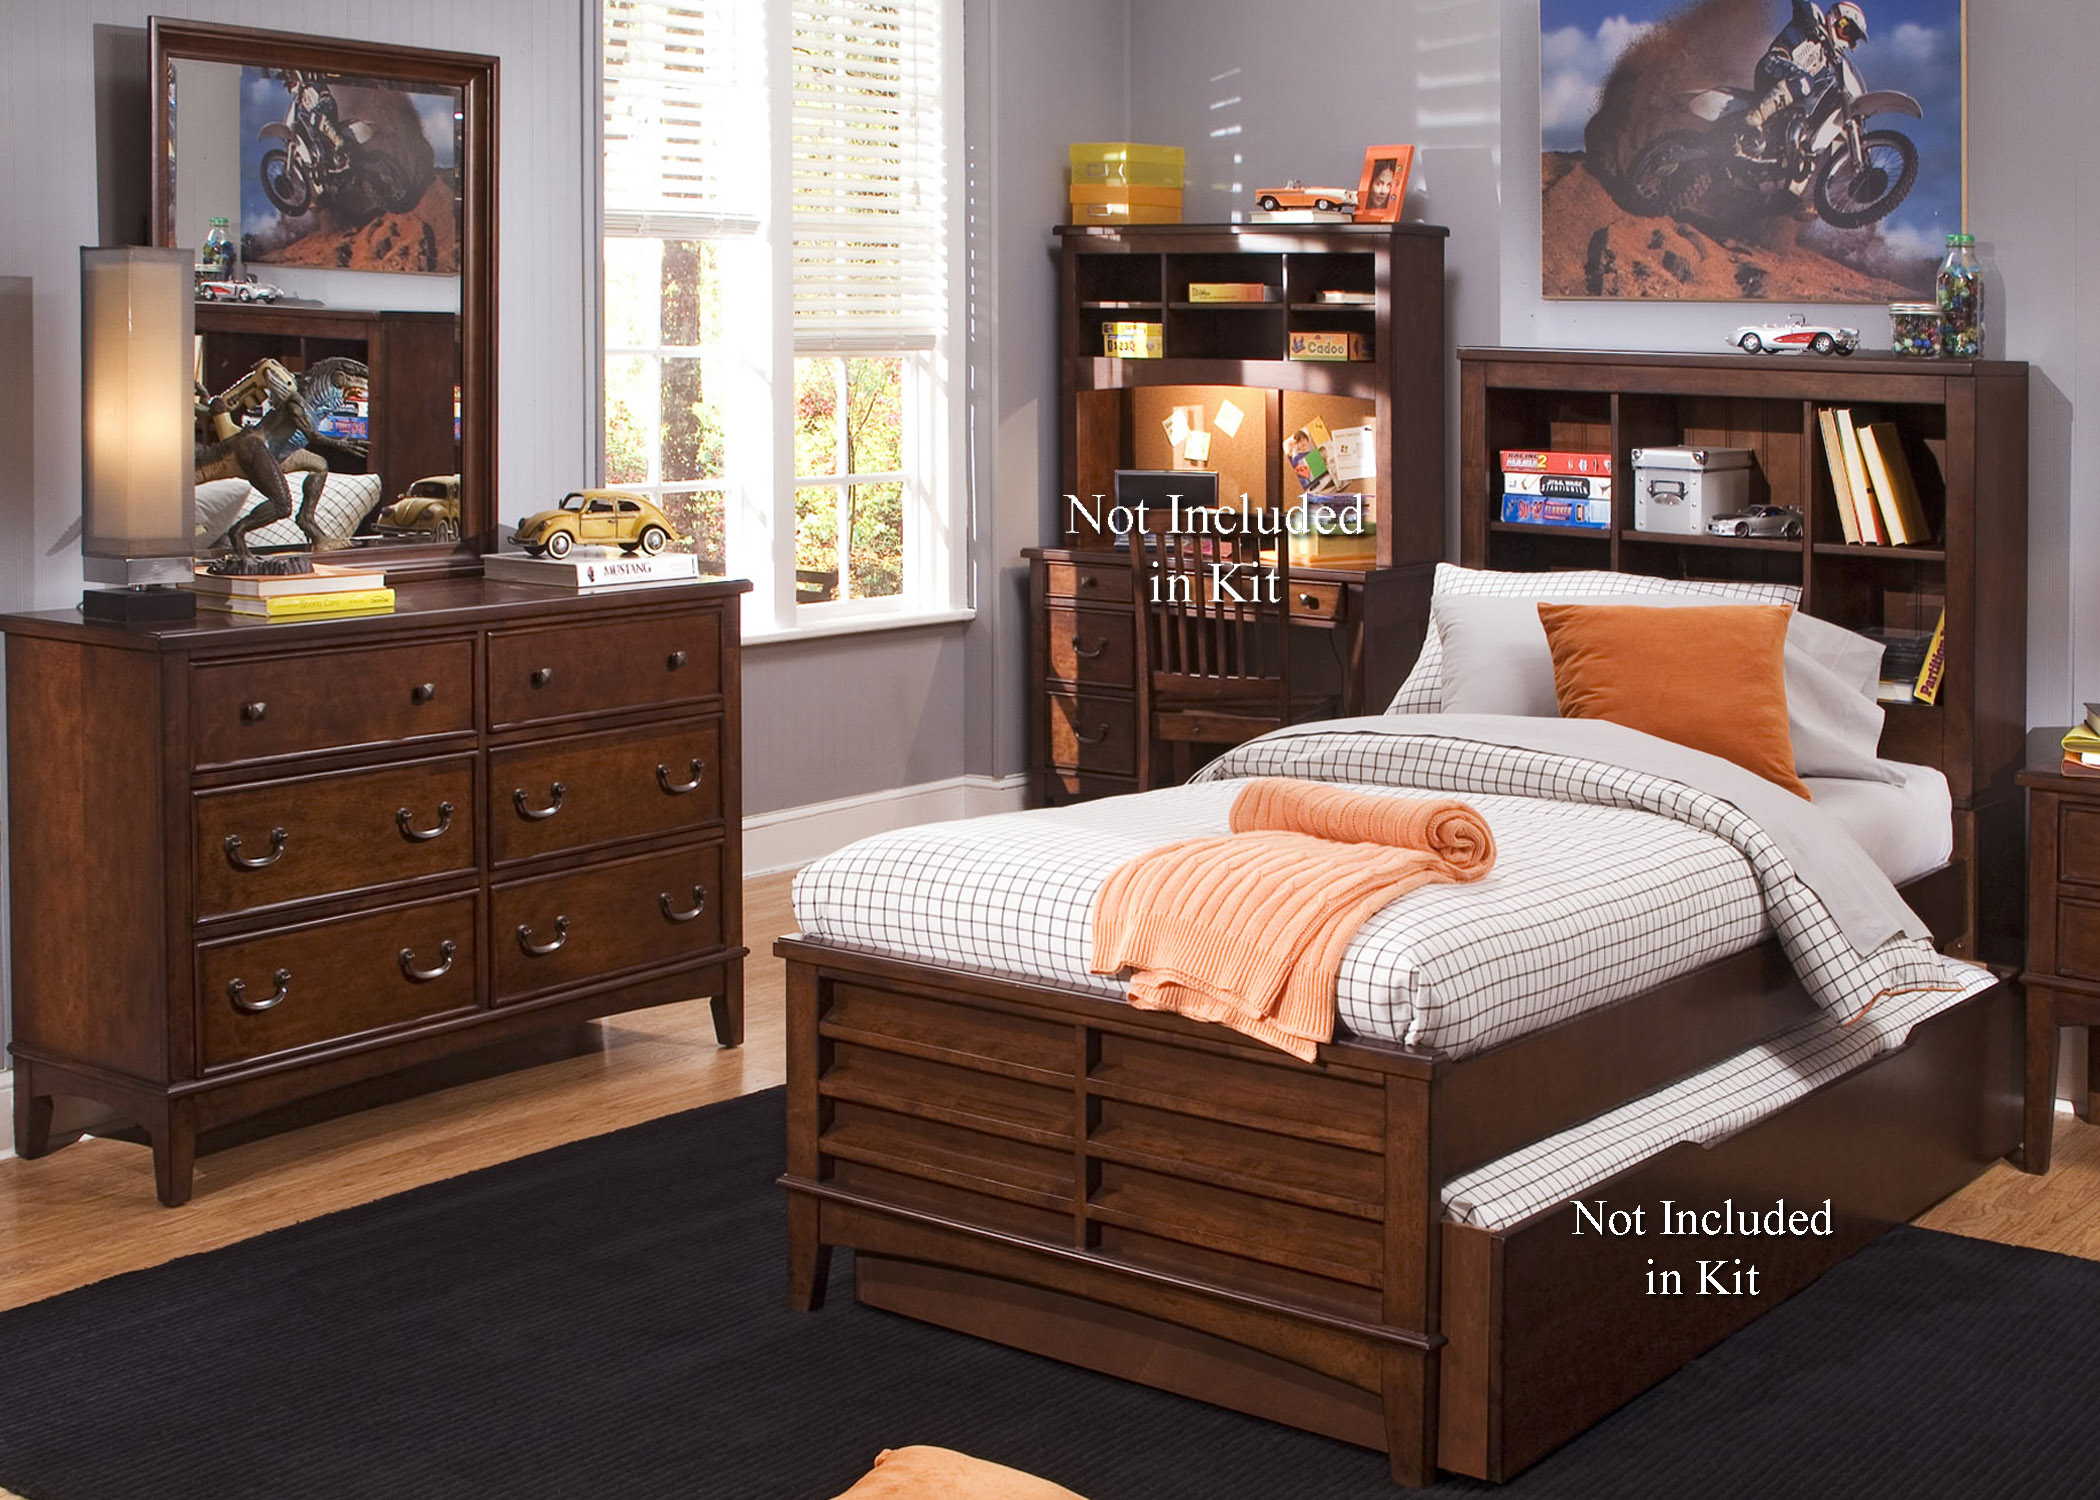 Liberty Furniture Chelsea Square Youth Bedroom Group - Item Number: 628-YBR-TBBDM